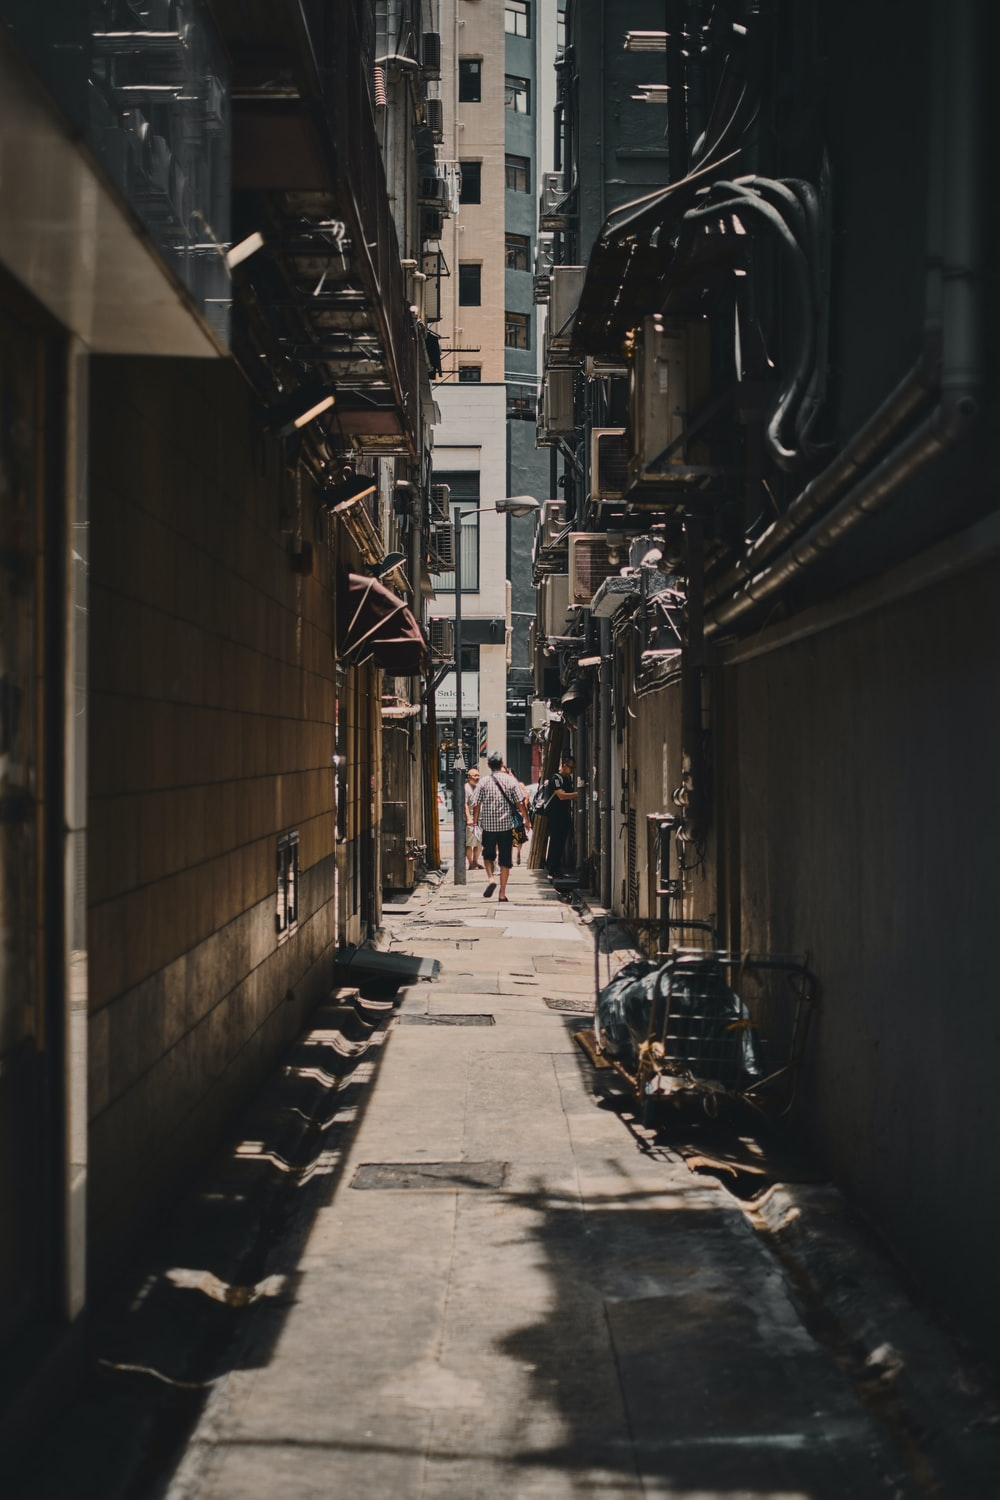 alley photography of person walkway between building during daytime